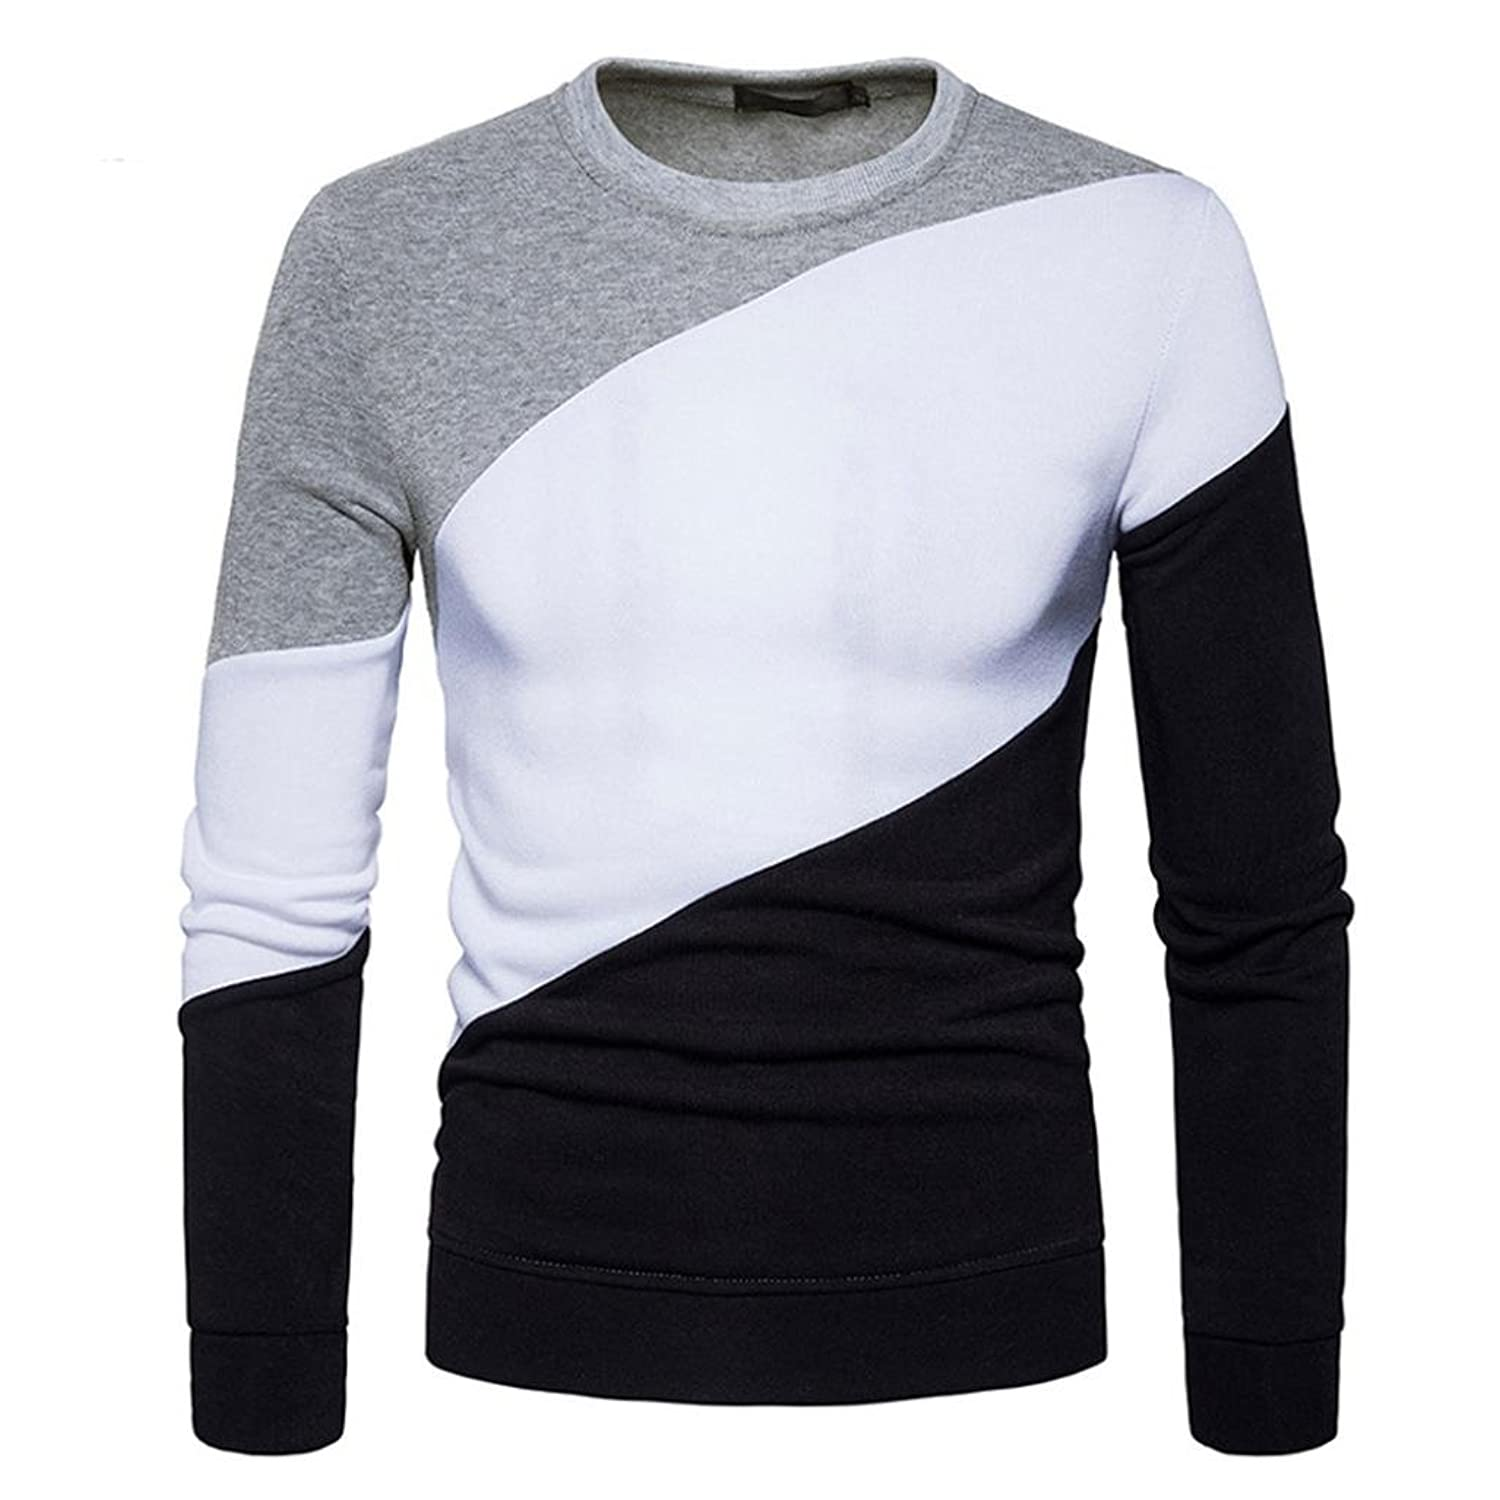 0245e5e7 Longay Men's Sweater Plus Size Sweatshirt Slim Fit Long Sleeve Warm  Knitting Pullover Top Blouse good